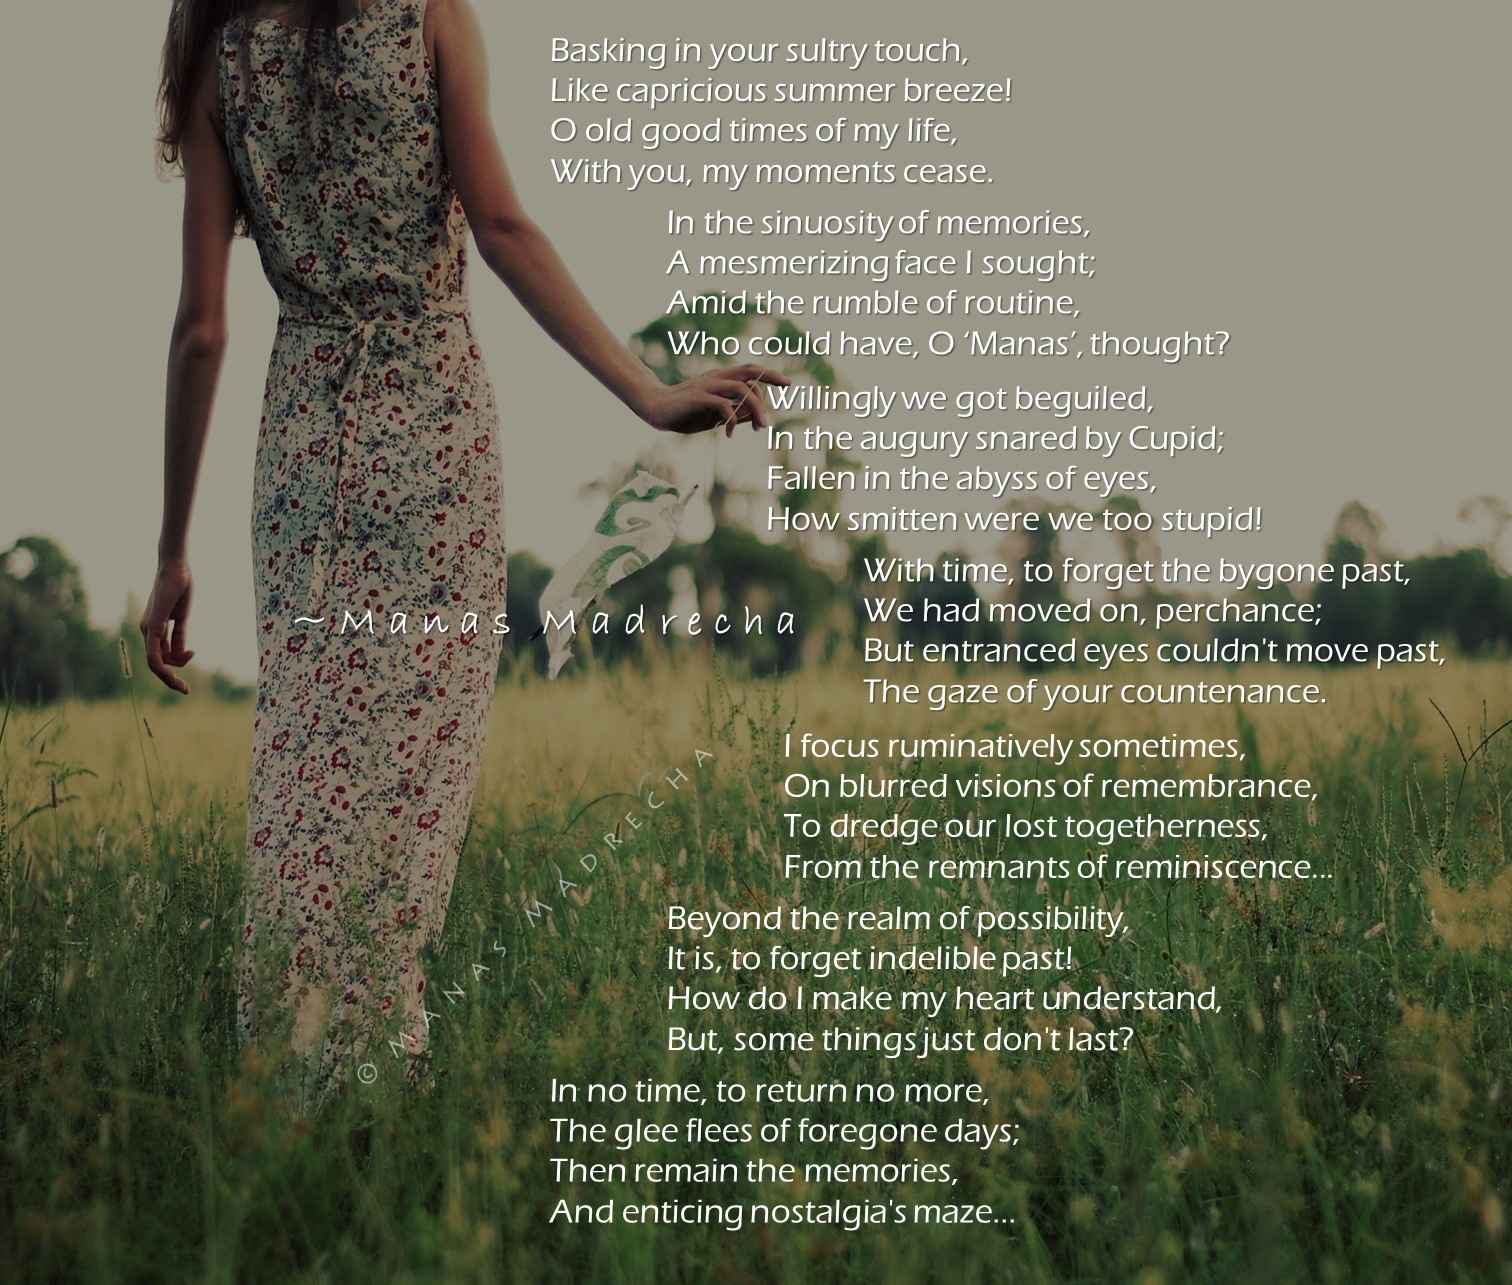 girl and nature, girl in garden, girl in forest, happy girl, summer girl, spring girl, Manas Madrecha, Manas Madrecha quotes, Manas Madrecha poems, Manas Madrecha blog, teenage blog, youth blog, motivational blog, inspirational blog, personal blog, memories poem, nostalgic poem, nostalgia, english poems, poem on love, poem on past, poem on memories, simplifying universe, girl turned away, girl back, love story, remembering the past